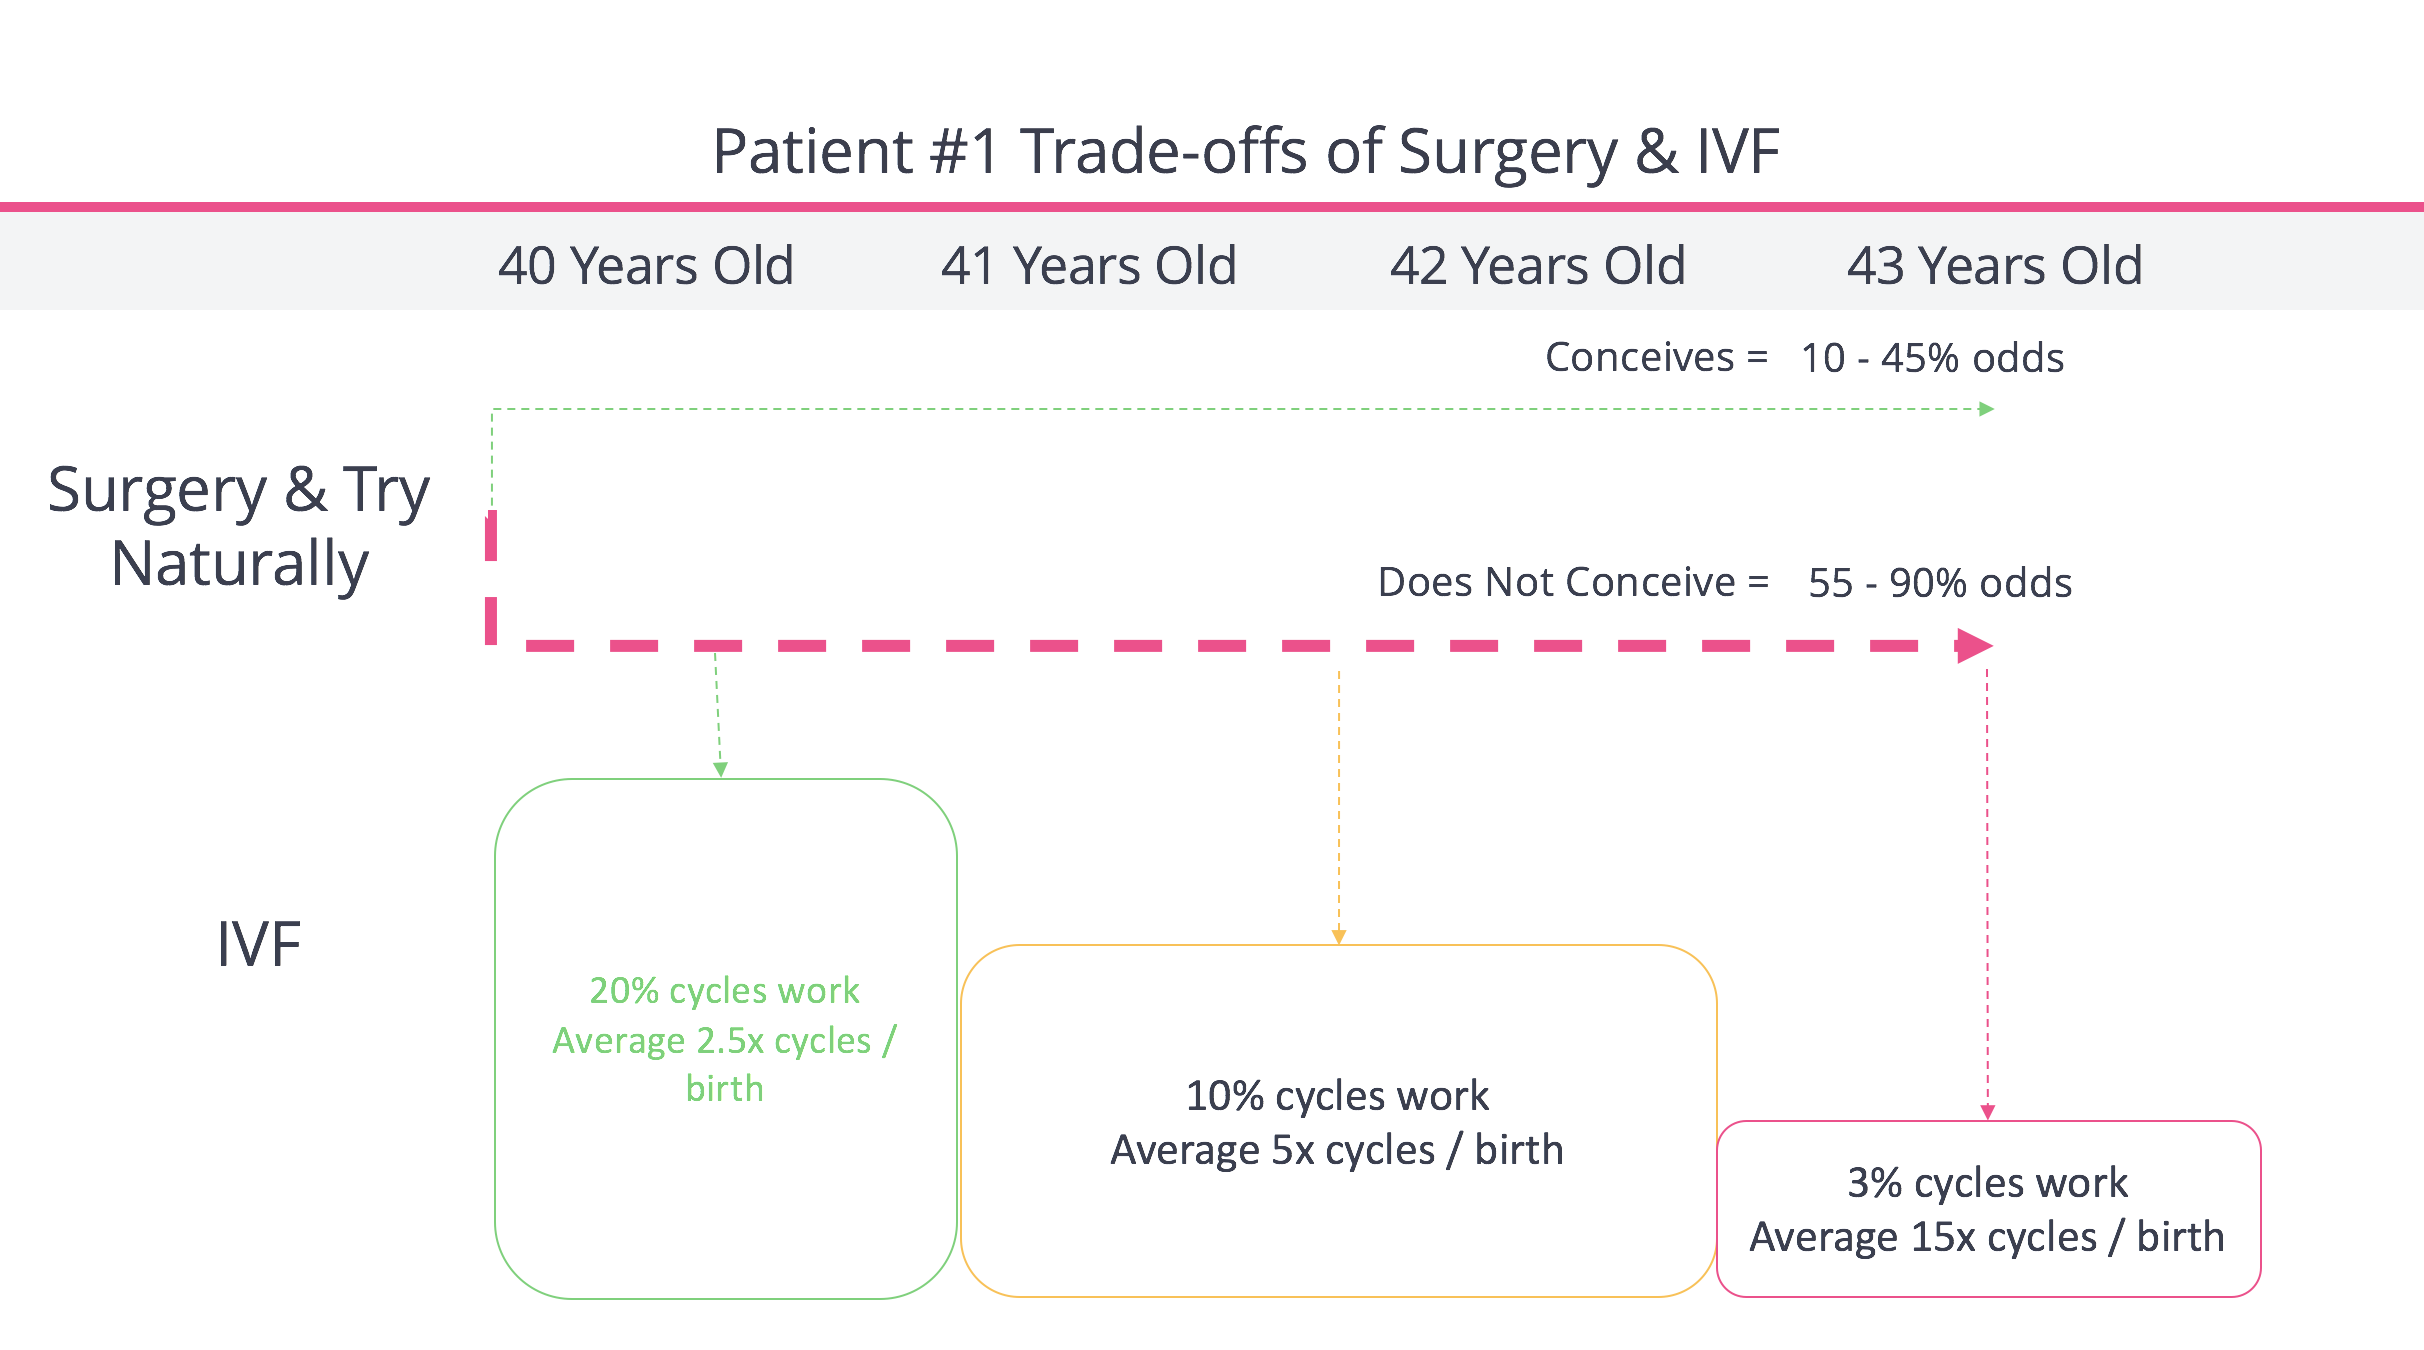 Trade-offs of Endometriosis Surgery vs. IVF For 40 Year Old Patient 4 Years Infertility